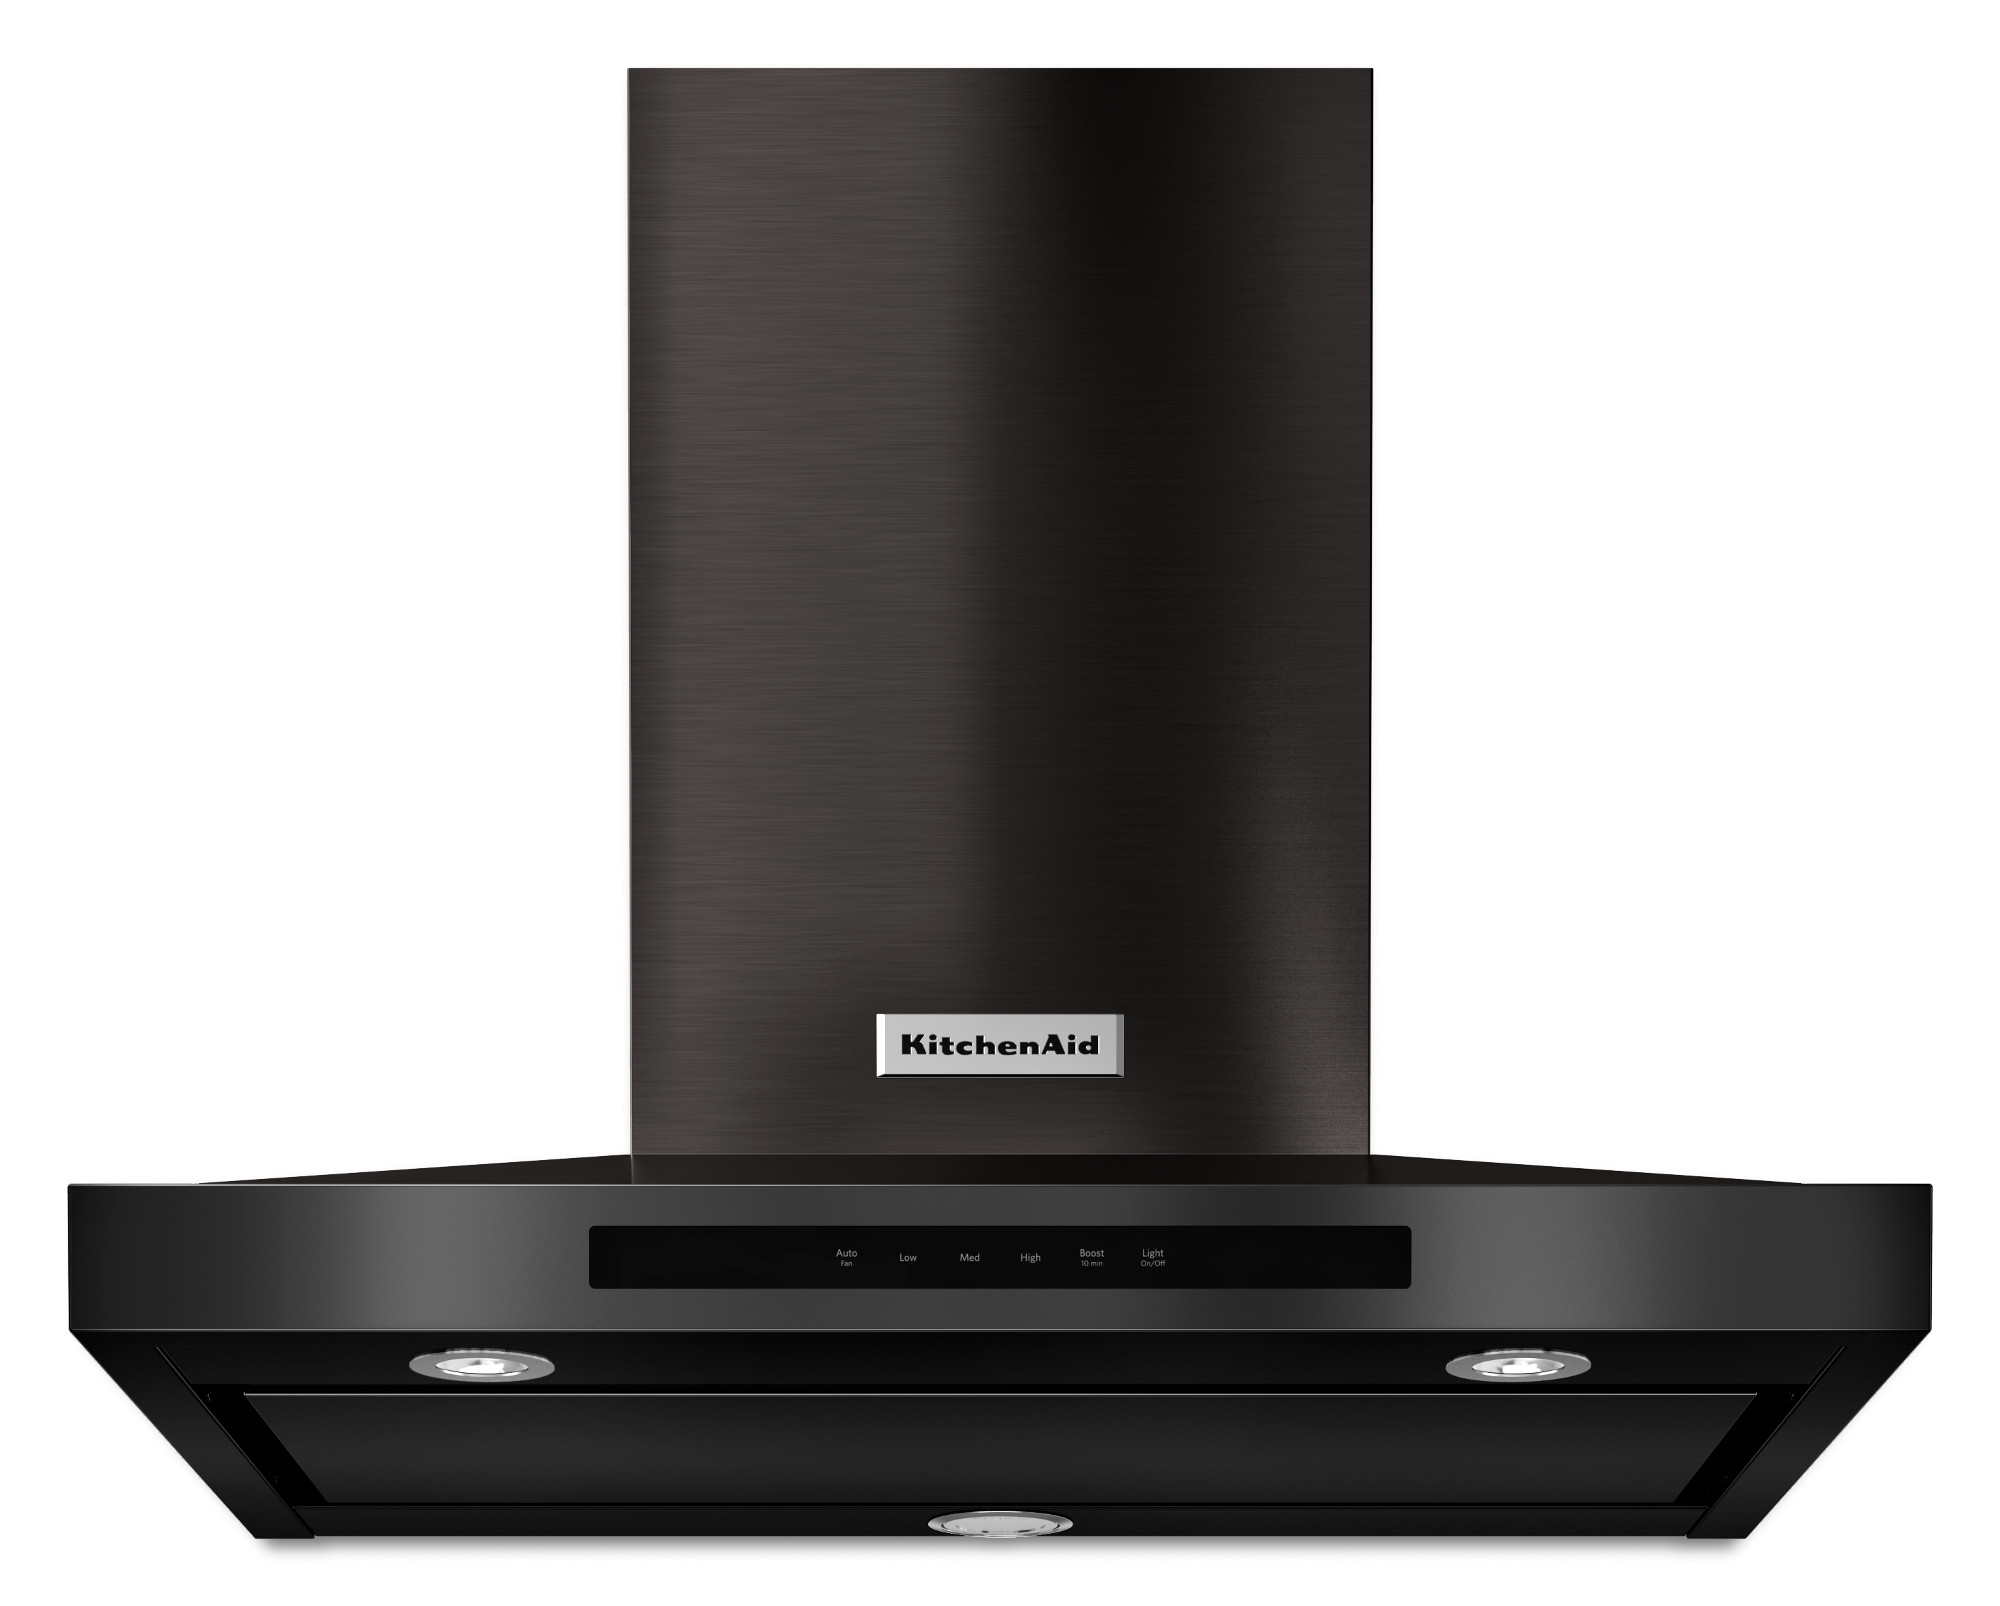 KitchenAid KVWB600DBS 30 Wall-Mount 3-Speed Canopy Hood - Black Stainless